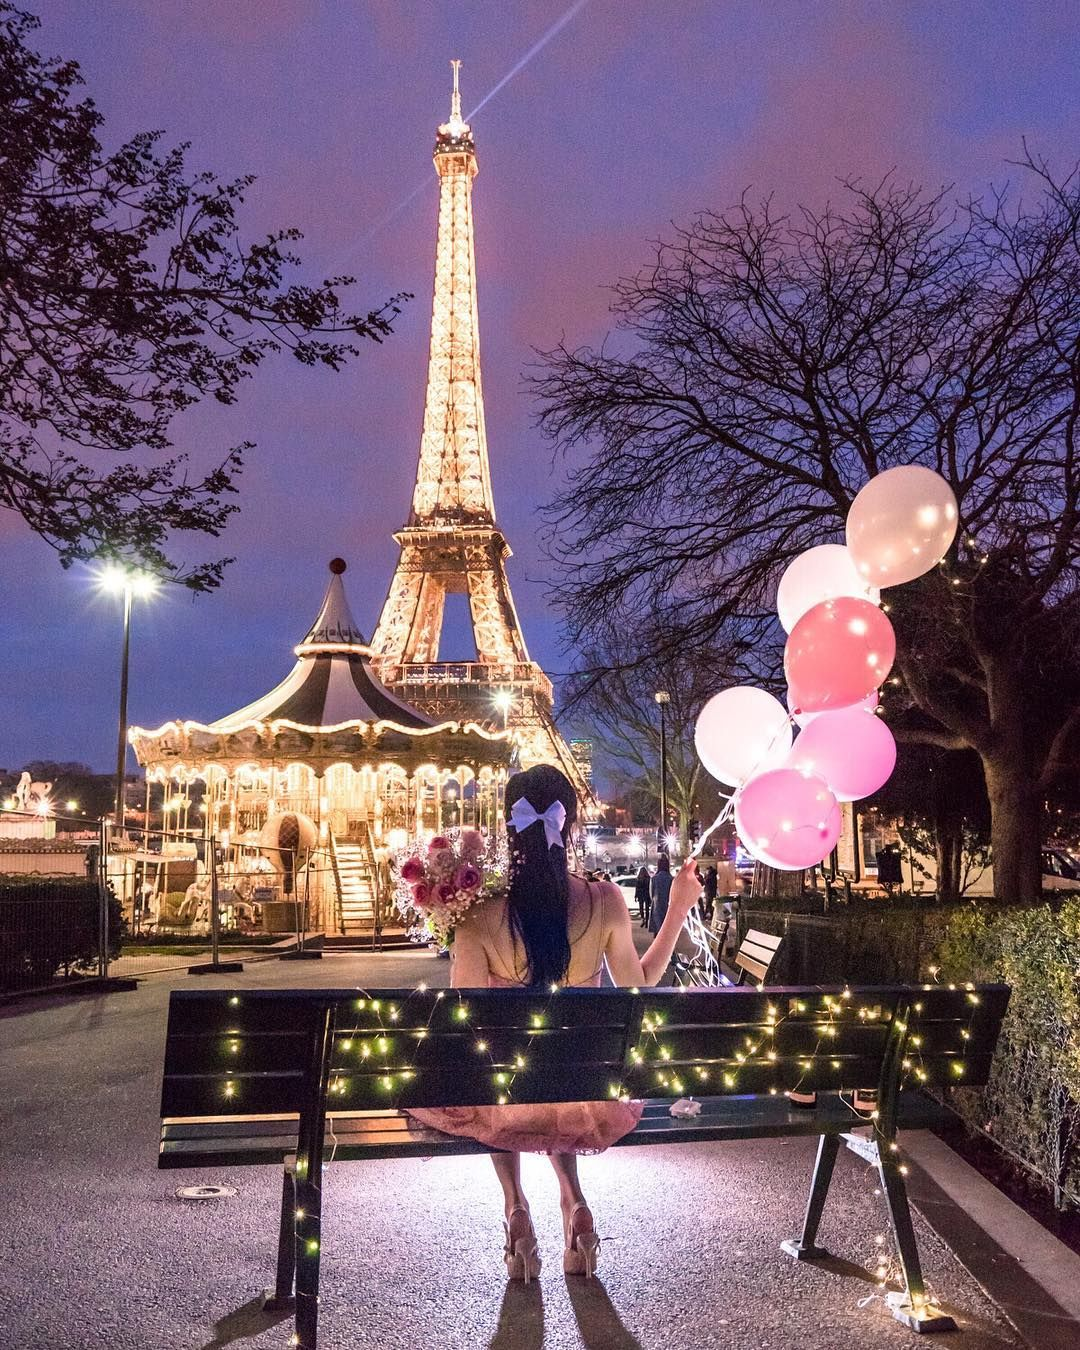 Agical Nights In Paris By Bisousparis Edited By Me I Always Get Asked How I Am Able To Enjoy Travel Paris Tour Eiffel Paris Photography Eiffel Tower